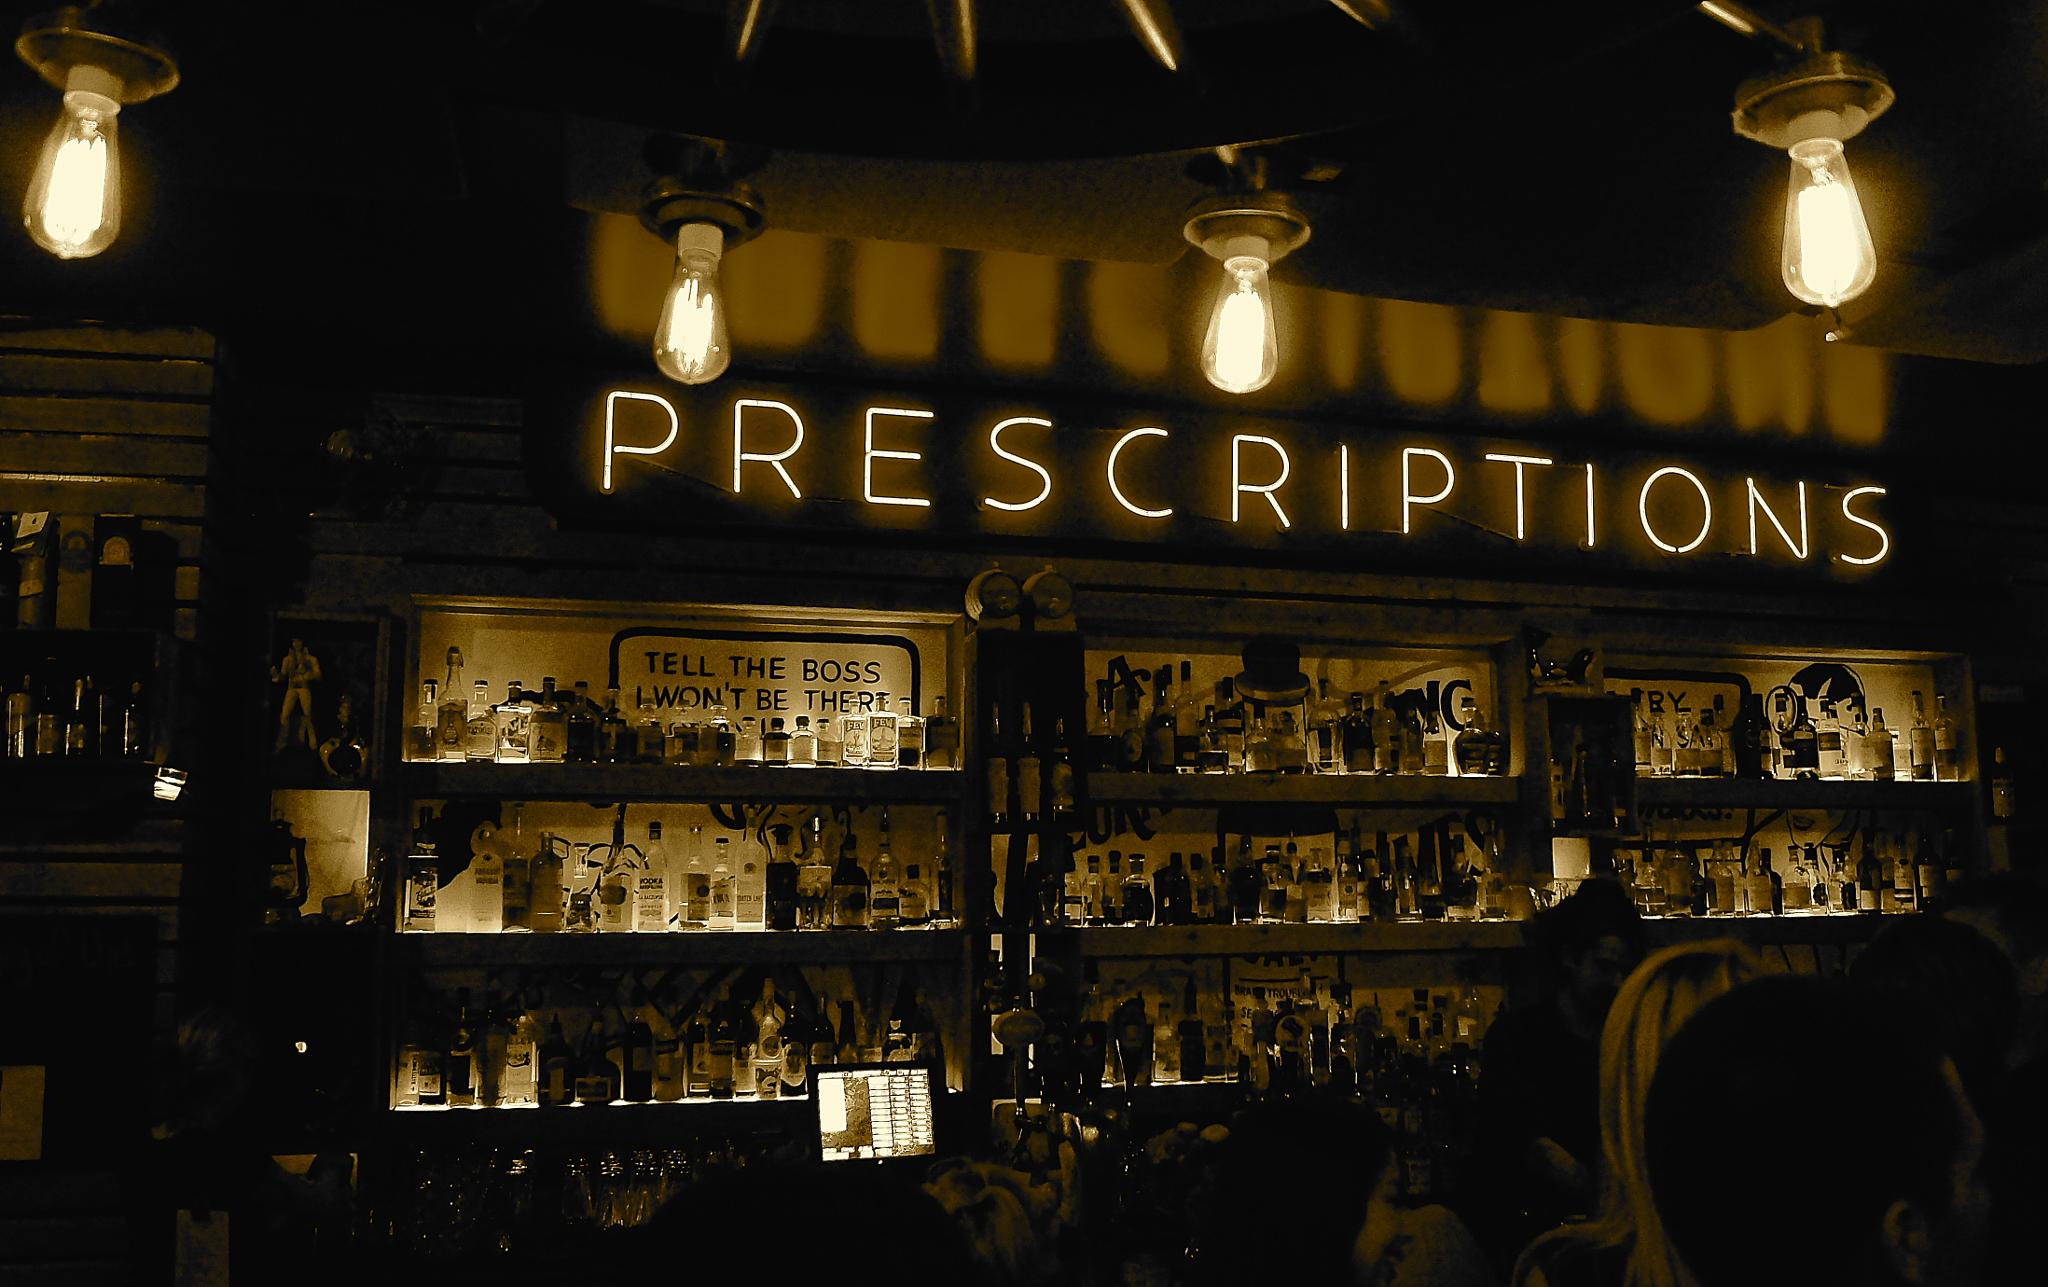 PROHIBITION IS OVER come and get your prescription  by orhidea images